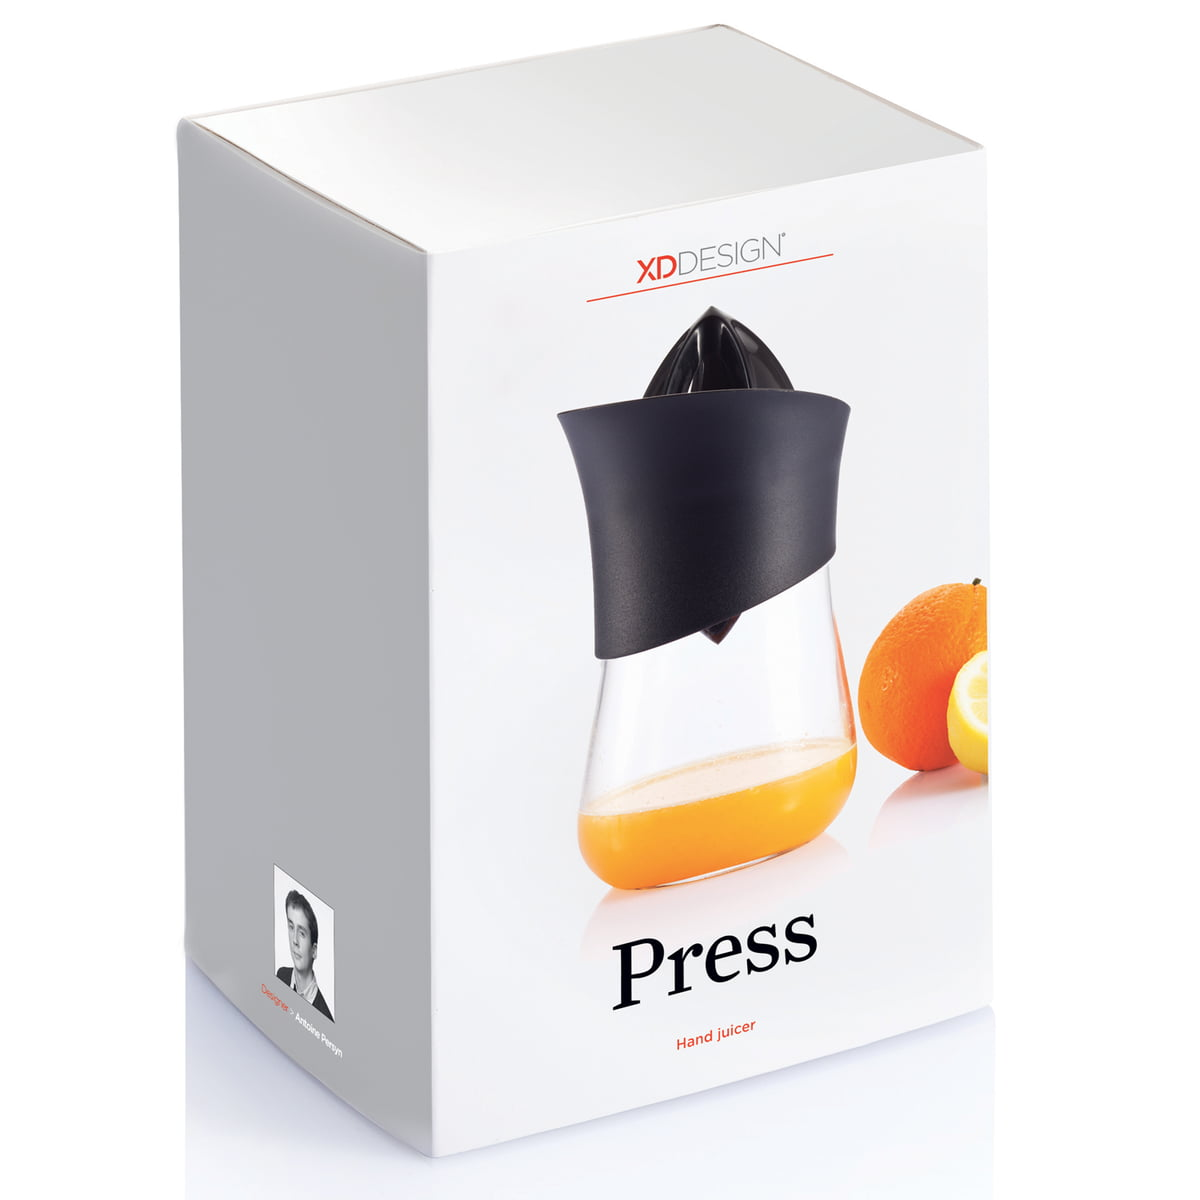 Press saftpresse von xd design im shop for Design im shop